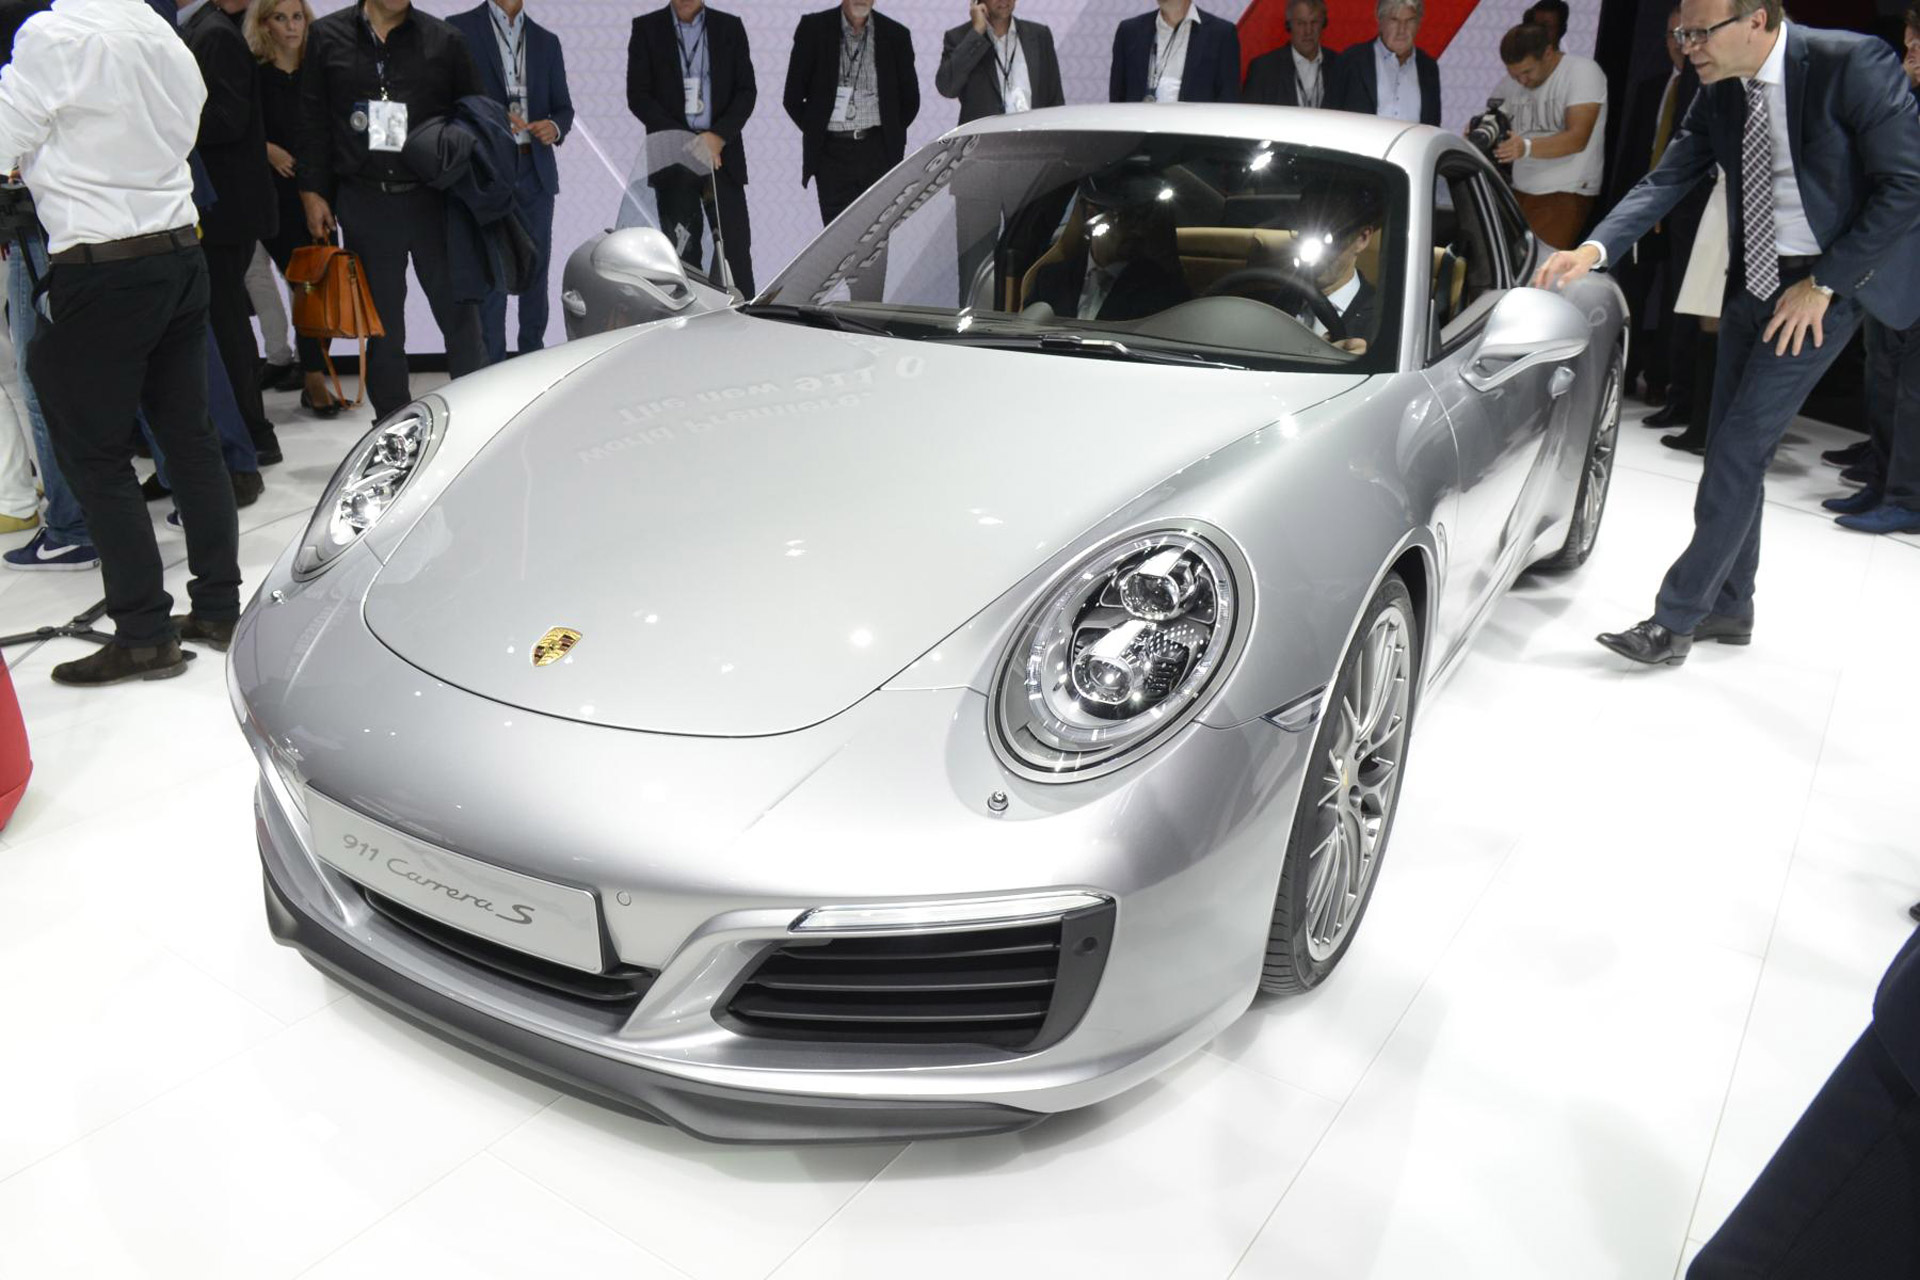 2017 porsche 911 carrera revealed with turbocharged engine. Black Bedroom Furniture Sets. Home Design Ideas